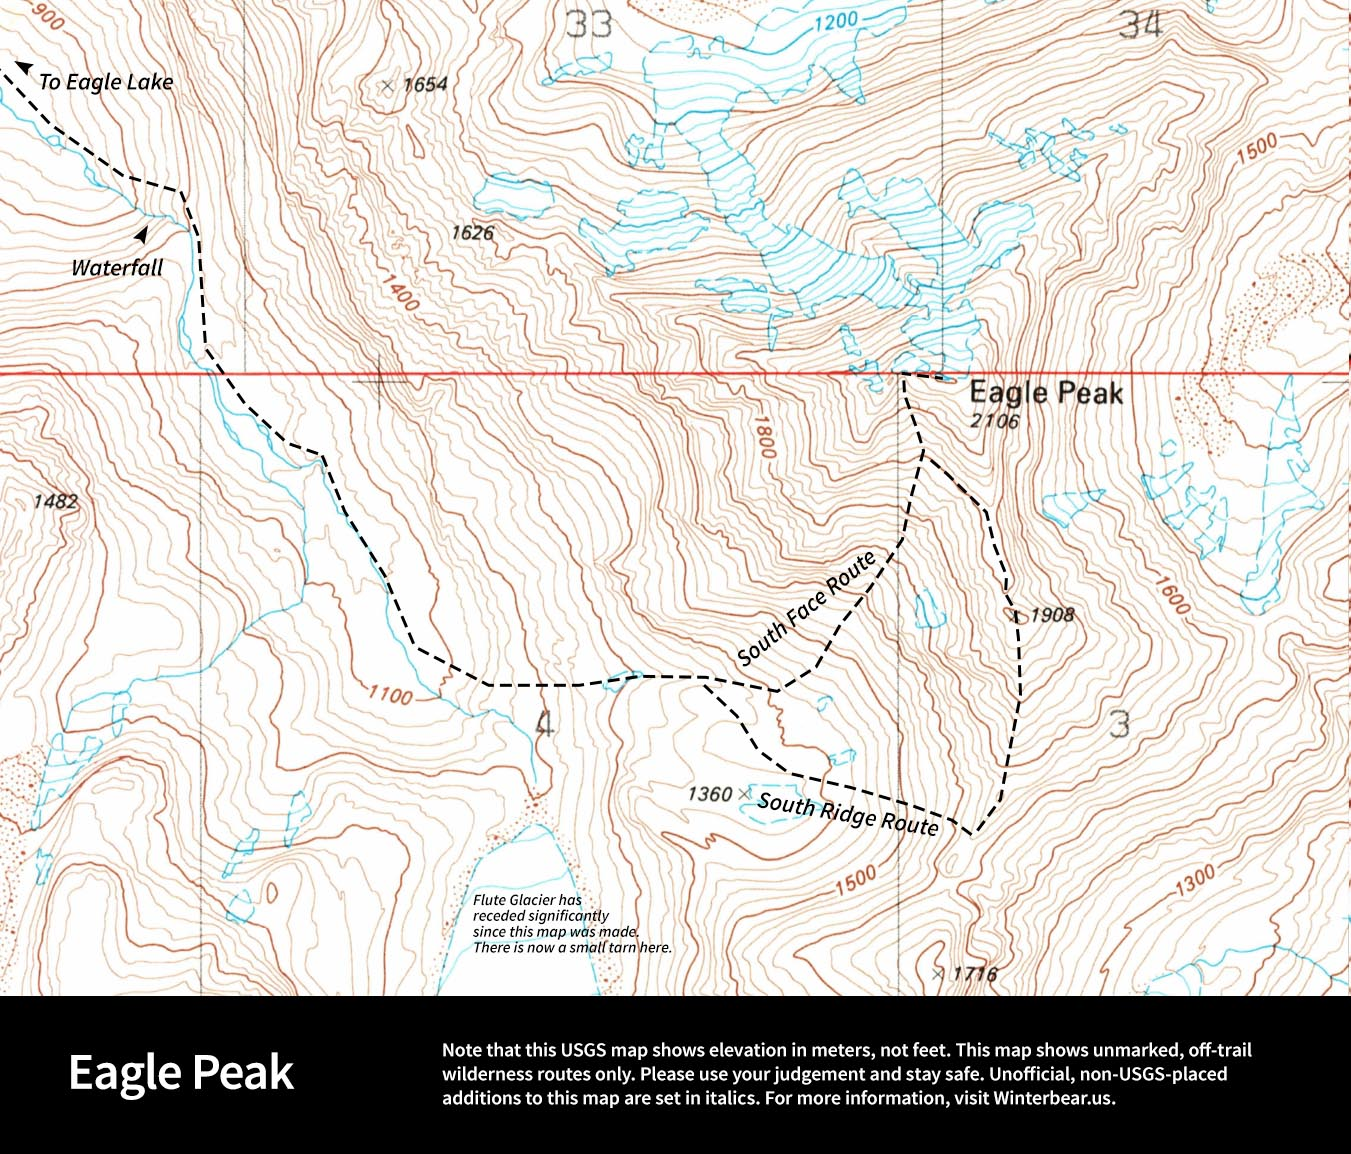 Map with routes to climb Eagle Peak